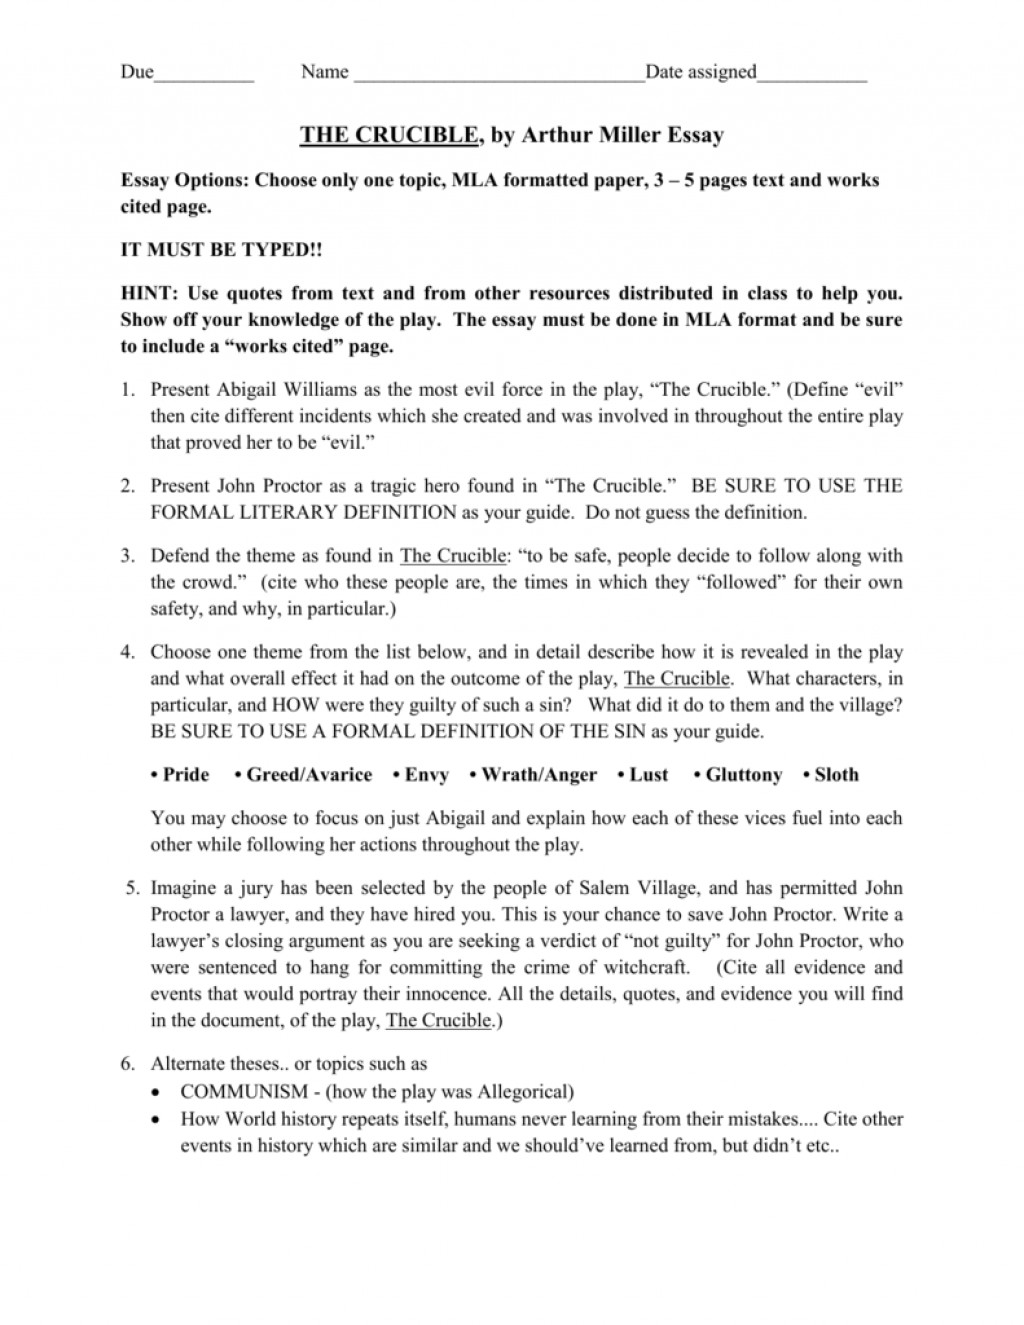 012 008038870 1 Essay Example On The Phenomenal Crucible And Red Scare Reputation Questions For Act Large